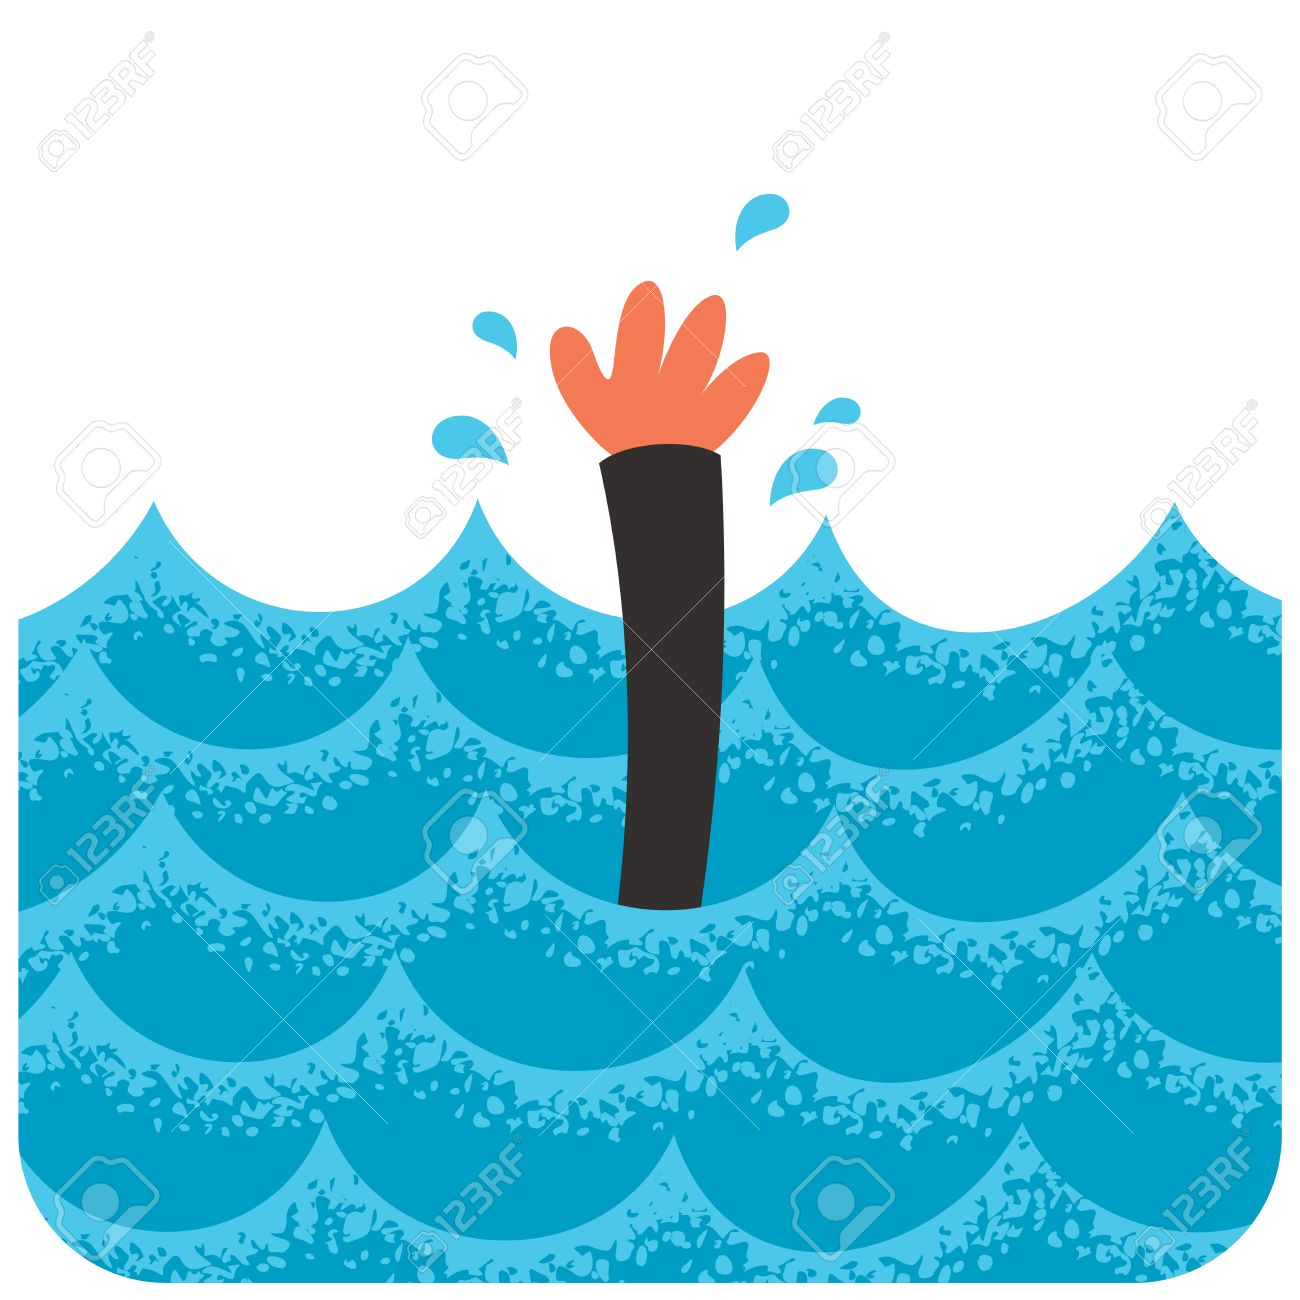 cartoon illustration of drowning man royalty free cliparts vectors rh 123rf com drowning clipart free drowning clipart black and white